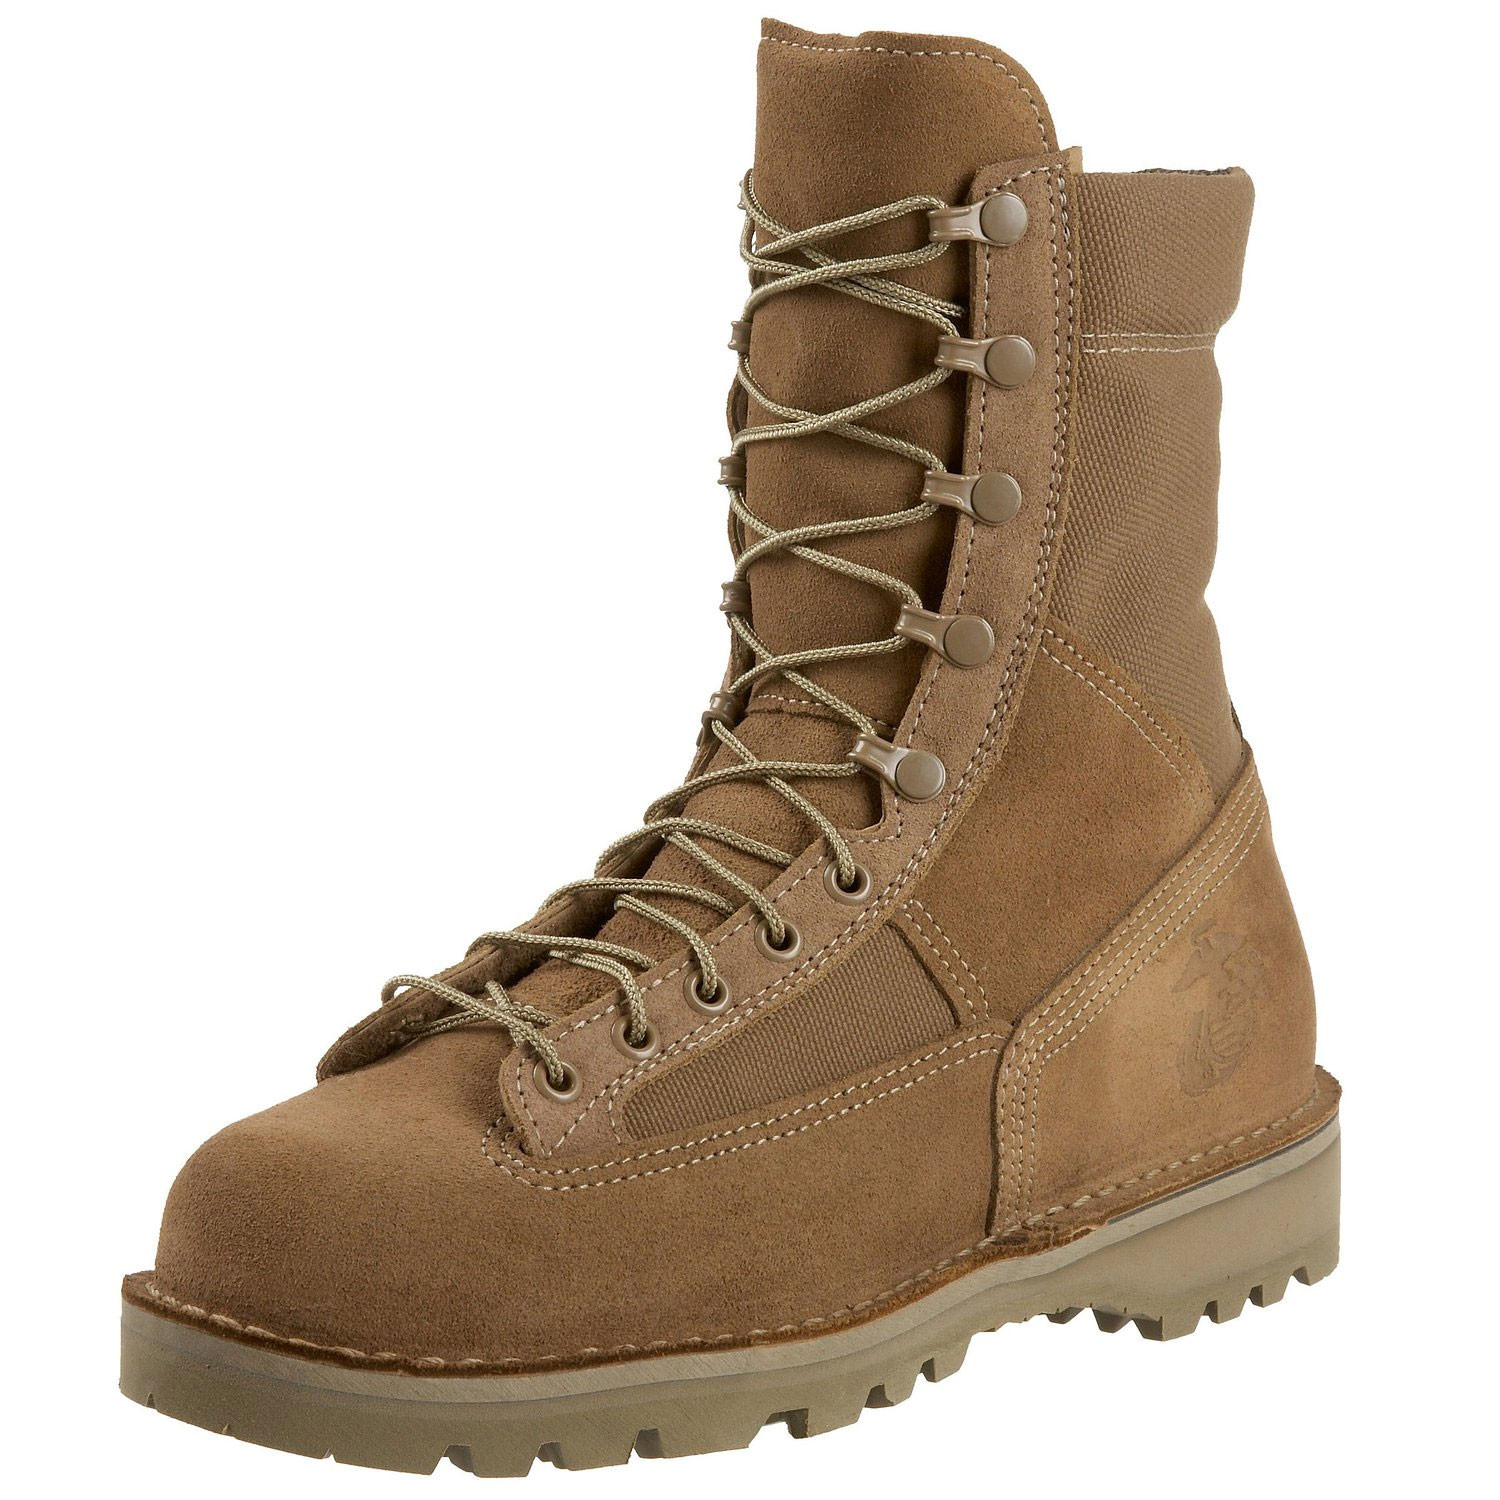 Danner Usmc 8 Quot Military Boots Field Supply